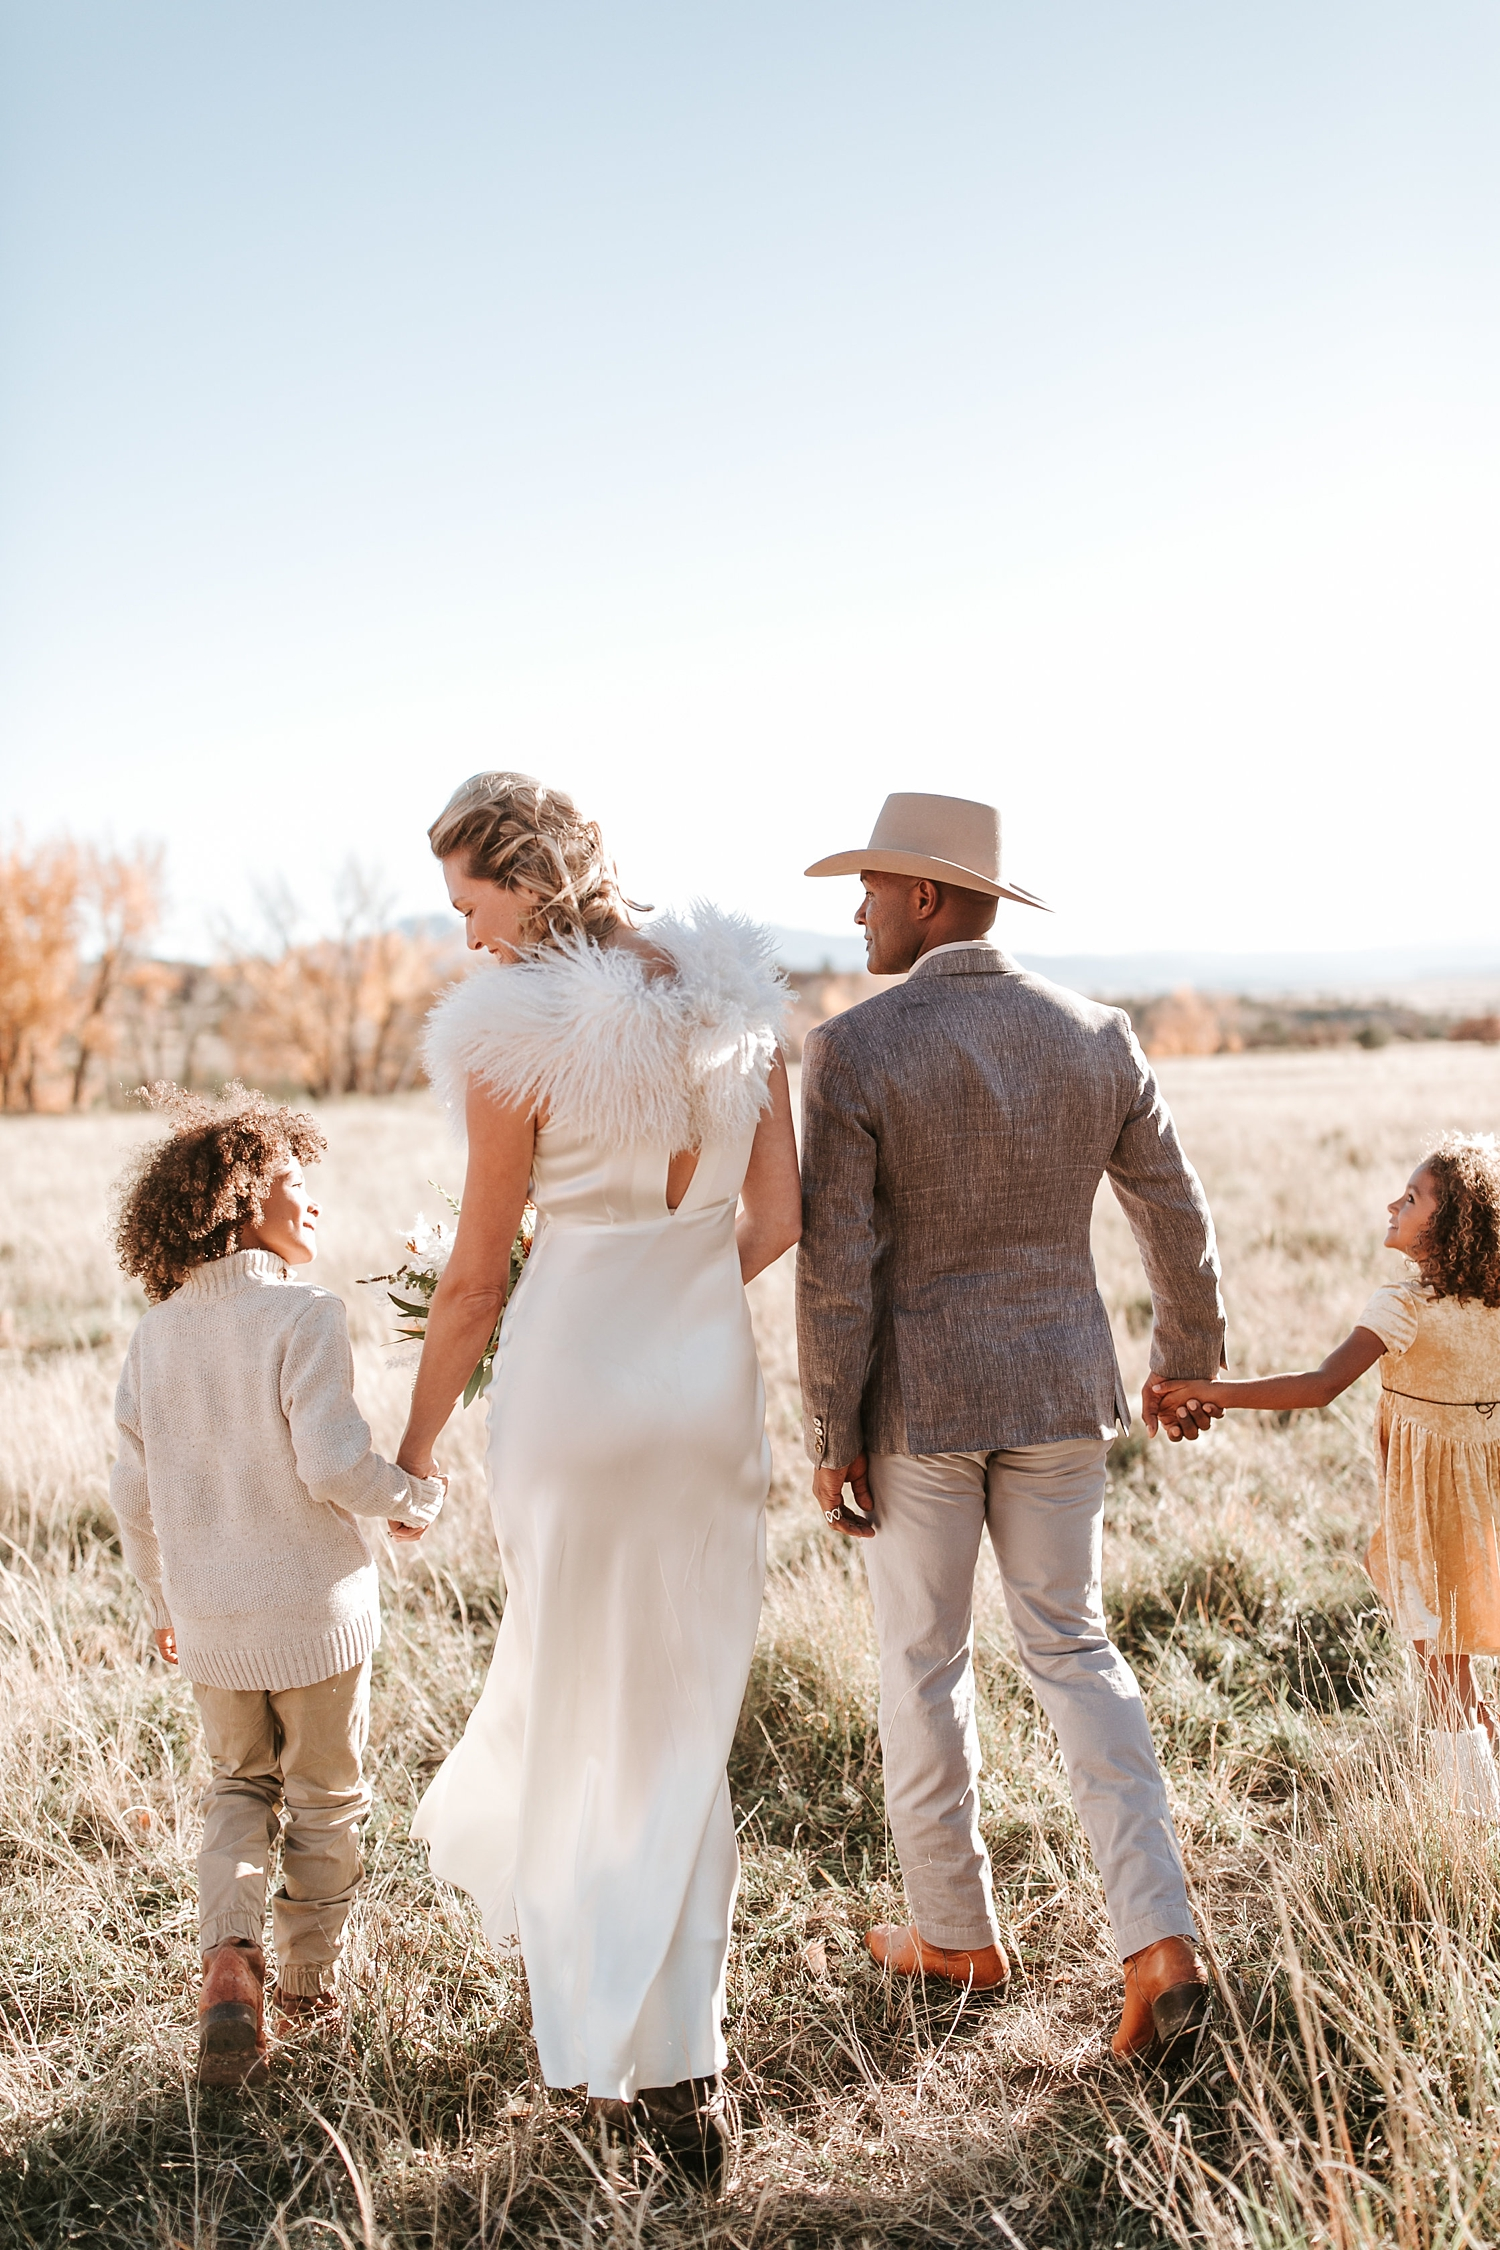 Alicia+lucia+photography+-+albuquerque+wedding+photographer+-+santa+fe+wedding+photography+-+new+mexico+wedding+photographer+-+new+mexico+ghost+ranch+wedding+-+styled+wedding+shoot_0028.jpg